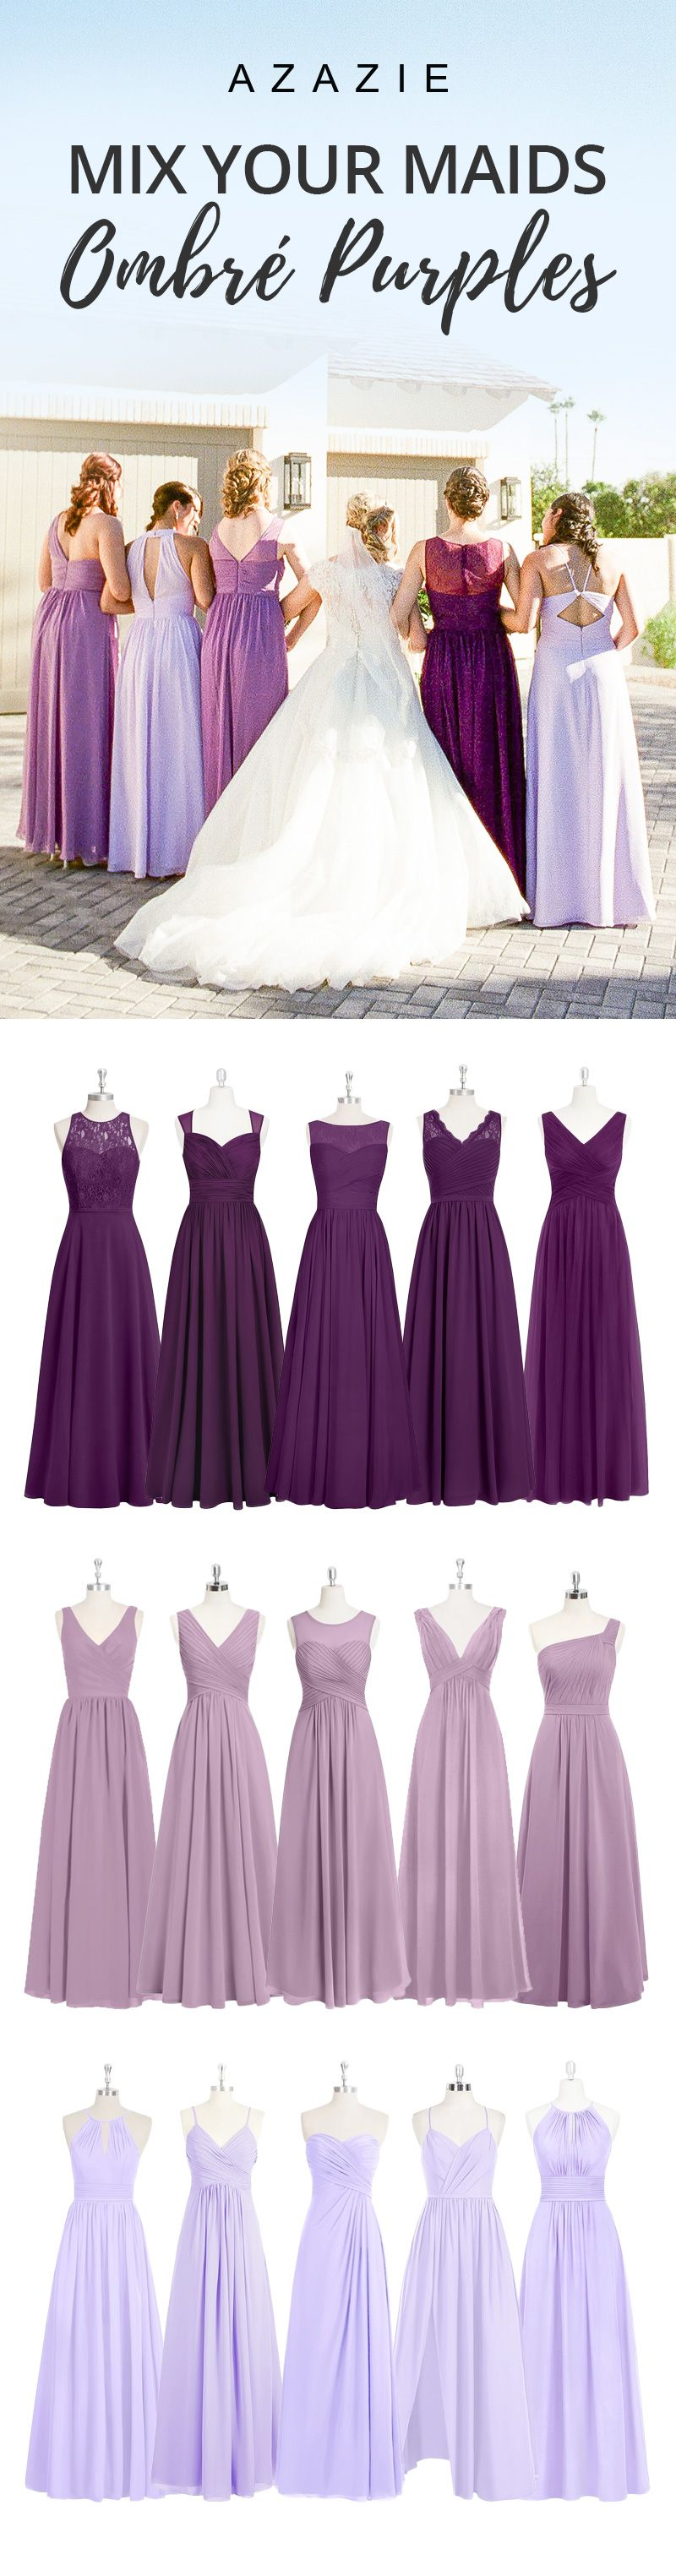 HJW Going With Different Colors Of Purple For Bridesmaid Dresses An Ombre Look